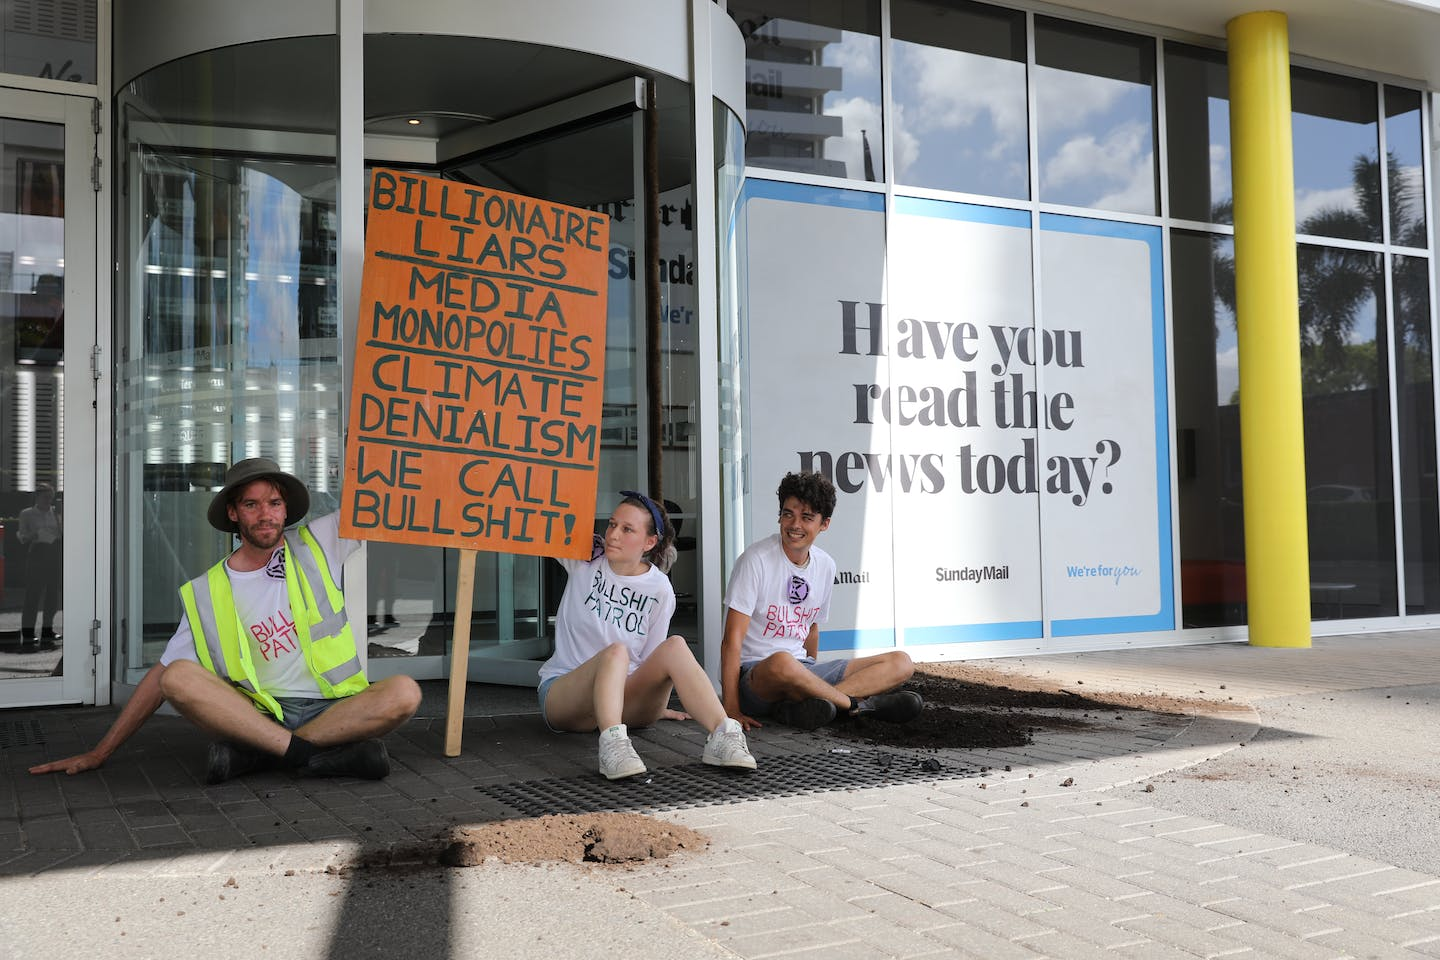 "Extinction Rebellion protesters demonstrate outside of the News Corp headquarters in Bowen Hills, Brisbane, where they deposited a truckload of manure. The protesters held banners that read: ""Billionaire liars. Media monopoly. Climate denial. We call bullshit."" Image: XR"